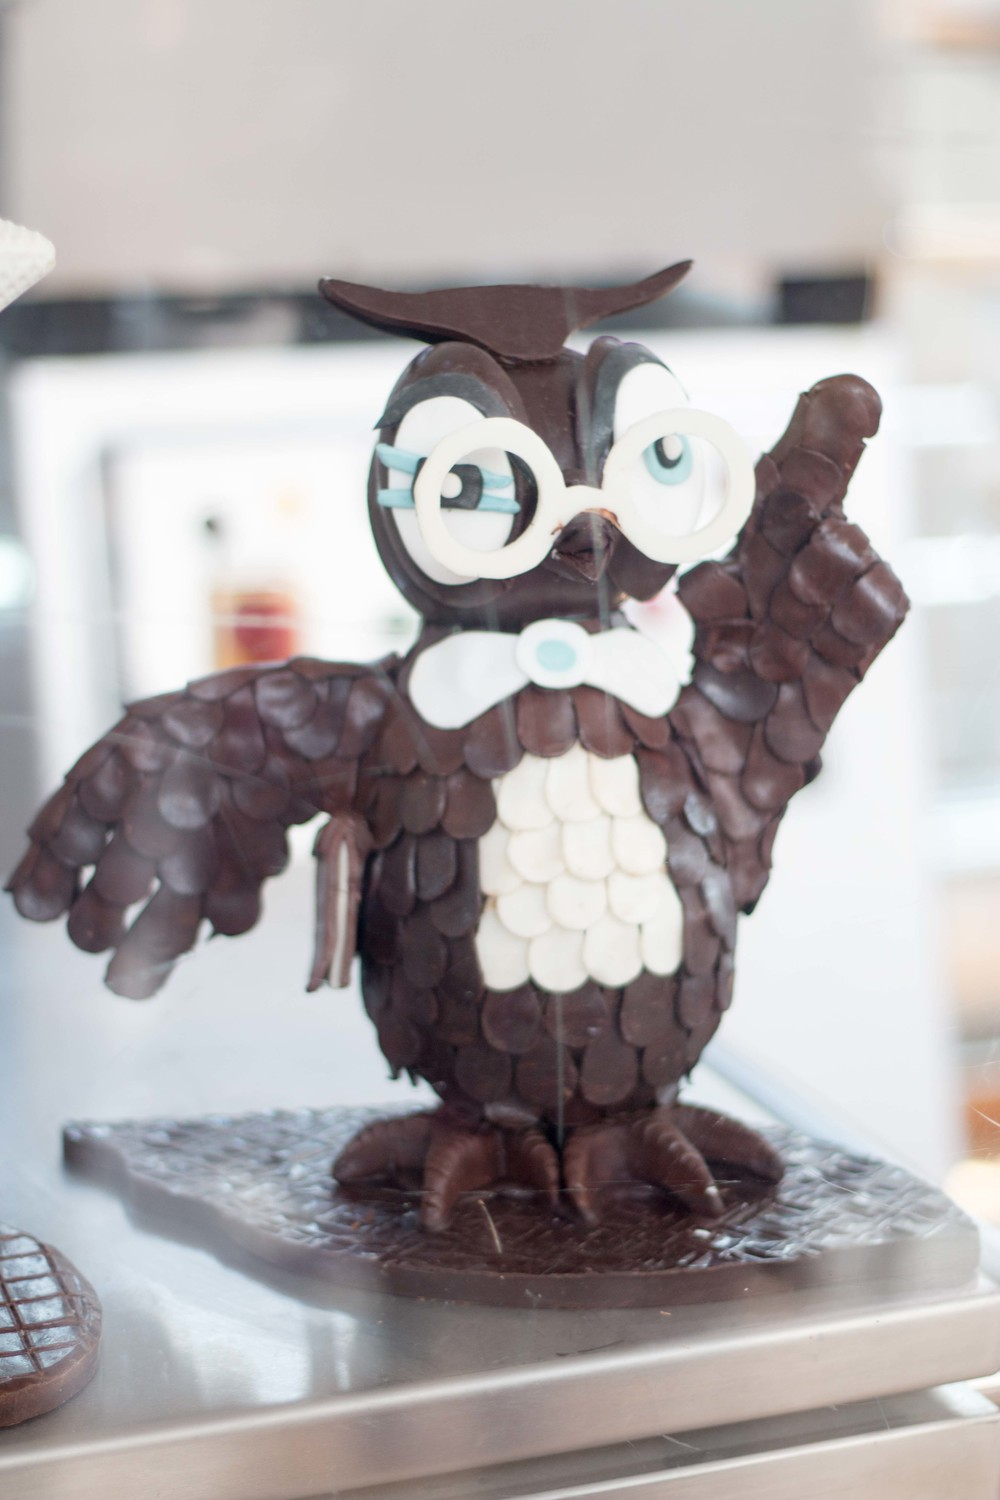 I wonder how I can get a chocolate owl....